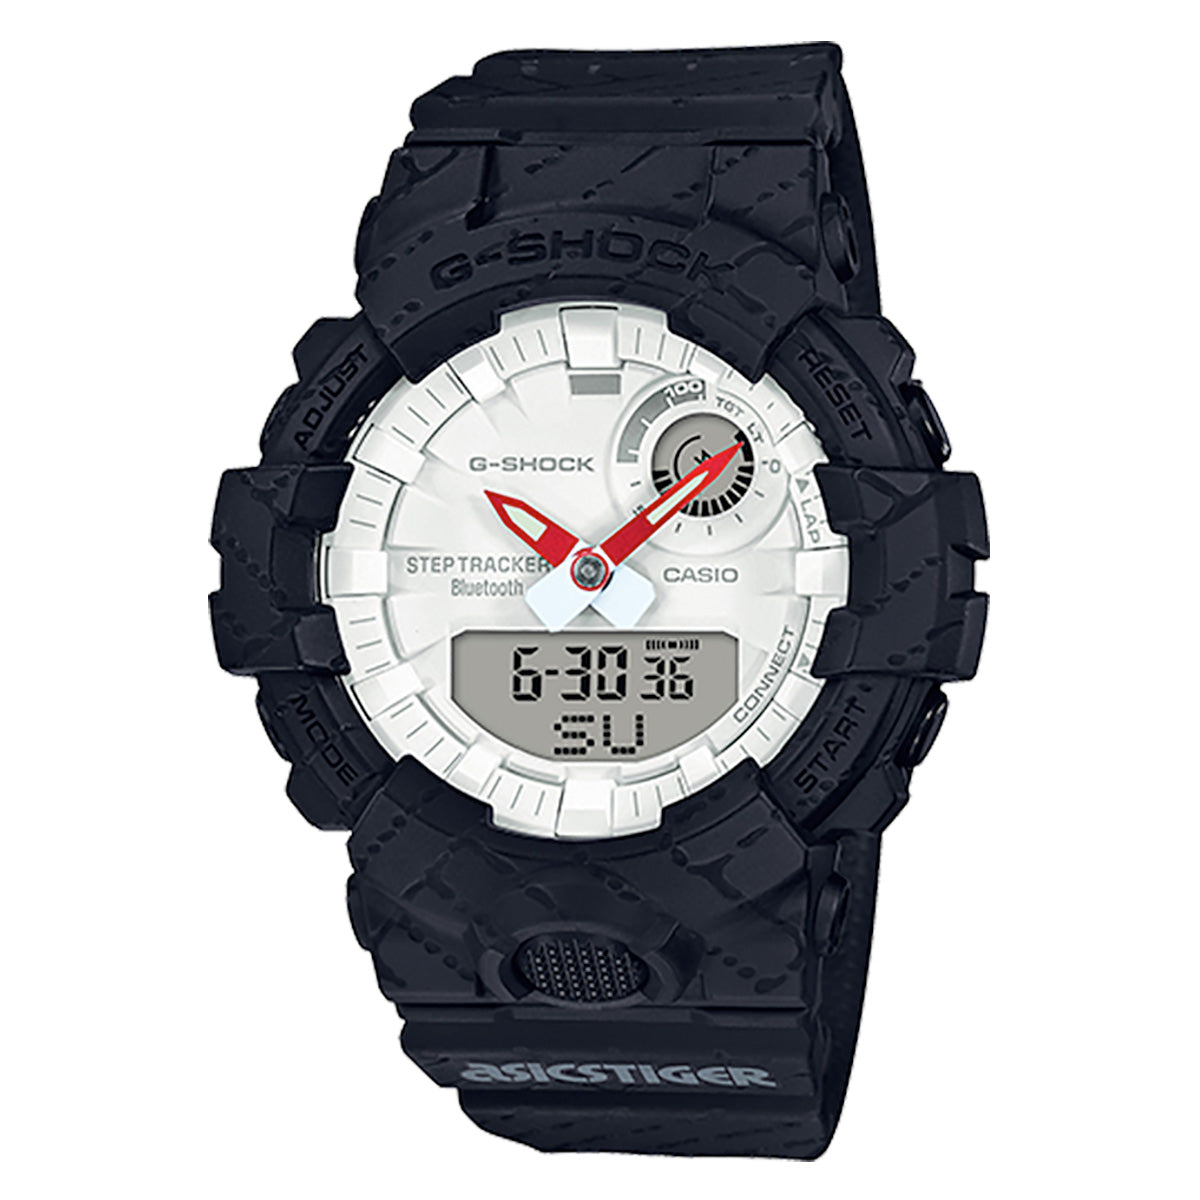 84f756caaa2b G-Shock  GBA800AT-1A G-Shock x Asics Watch - Black – TurntableLab.com